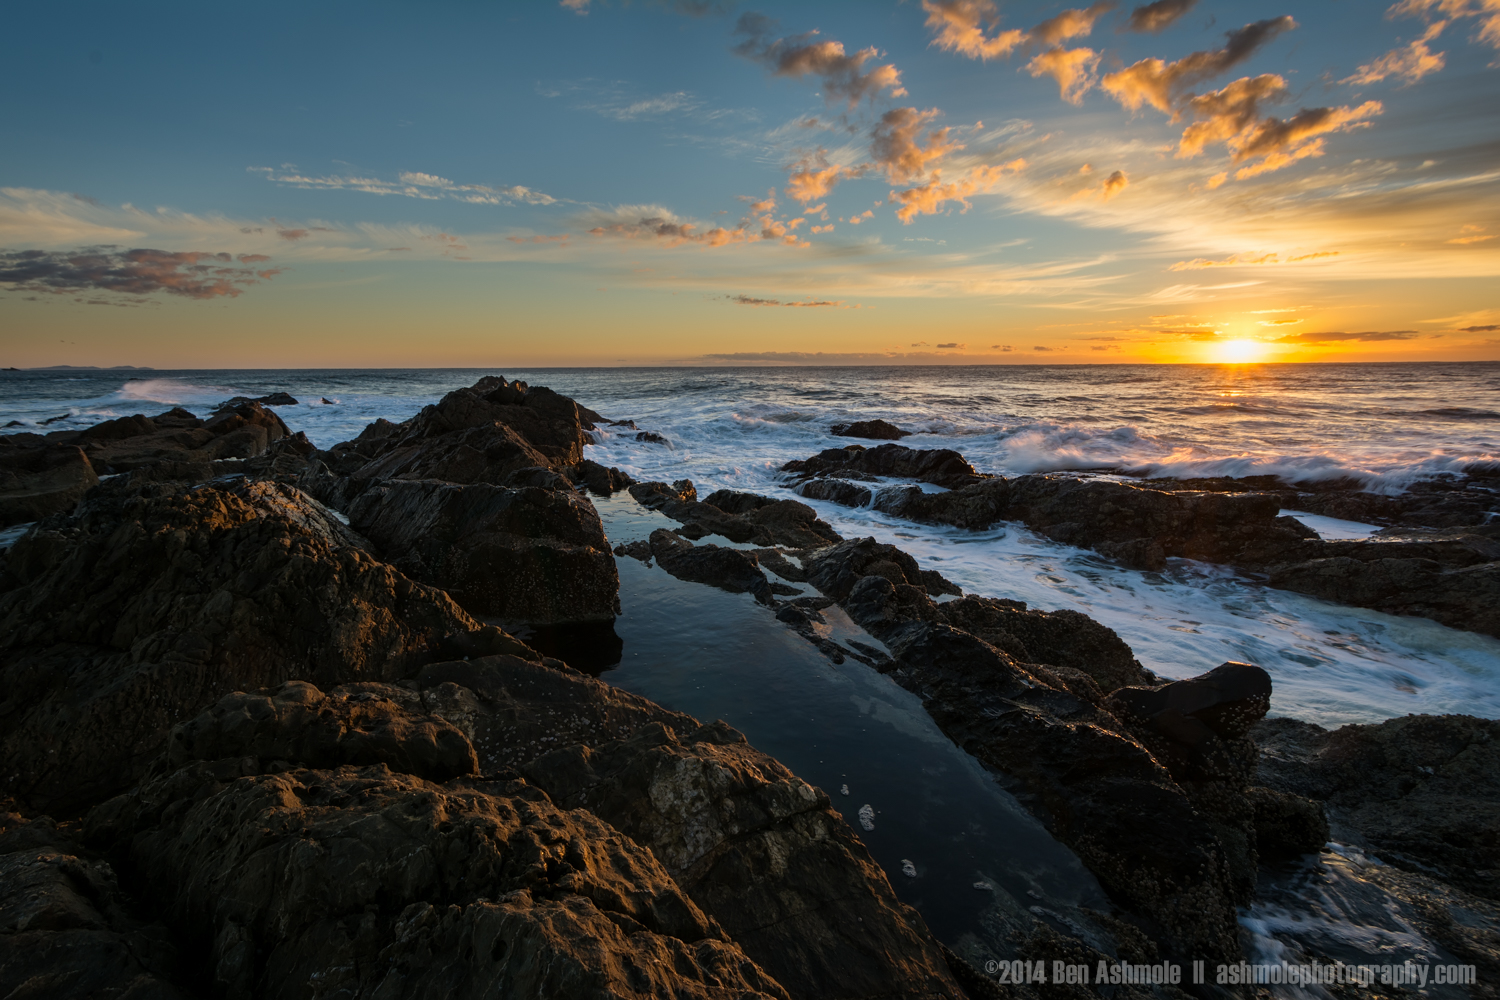 The Most Easterly Sunrise, Byron Bay, Australia